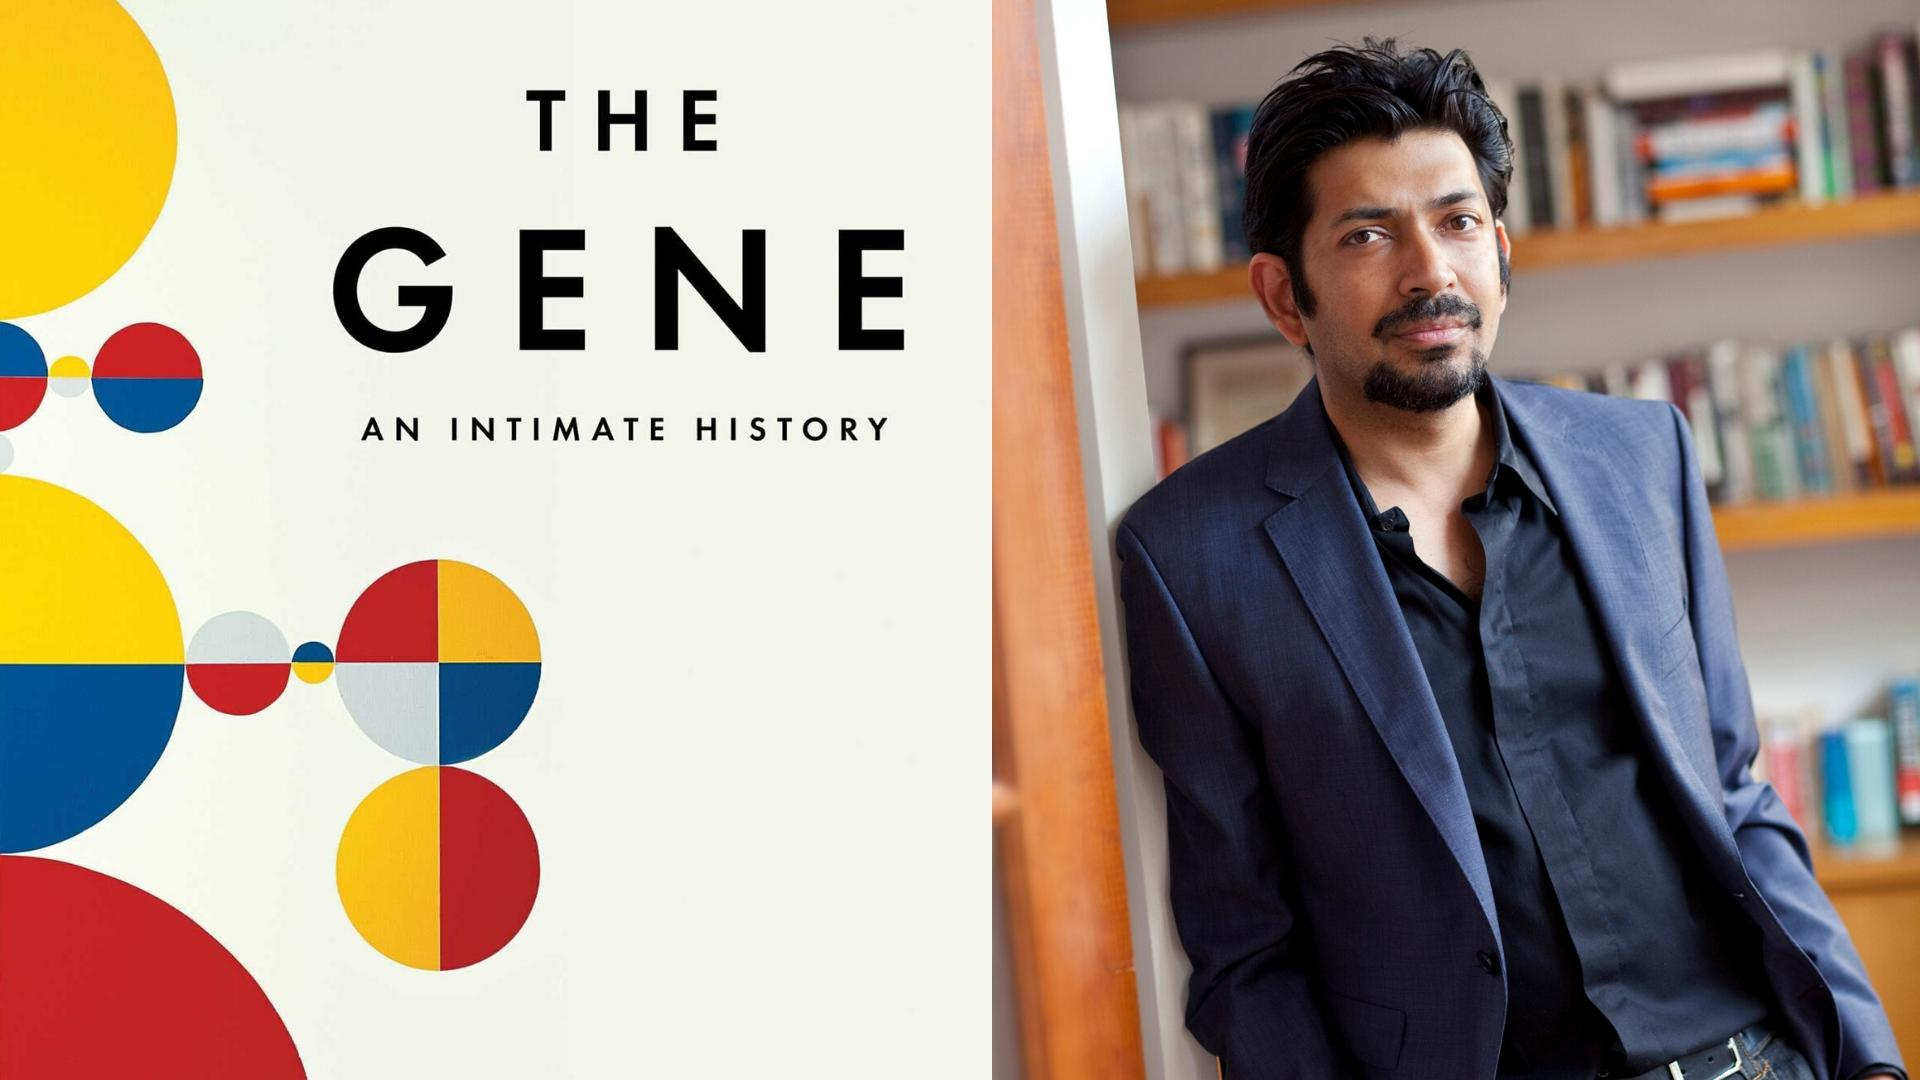 Dr. Mukherjee and The Gene